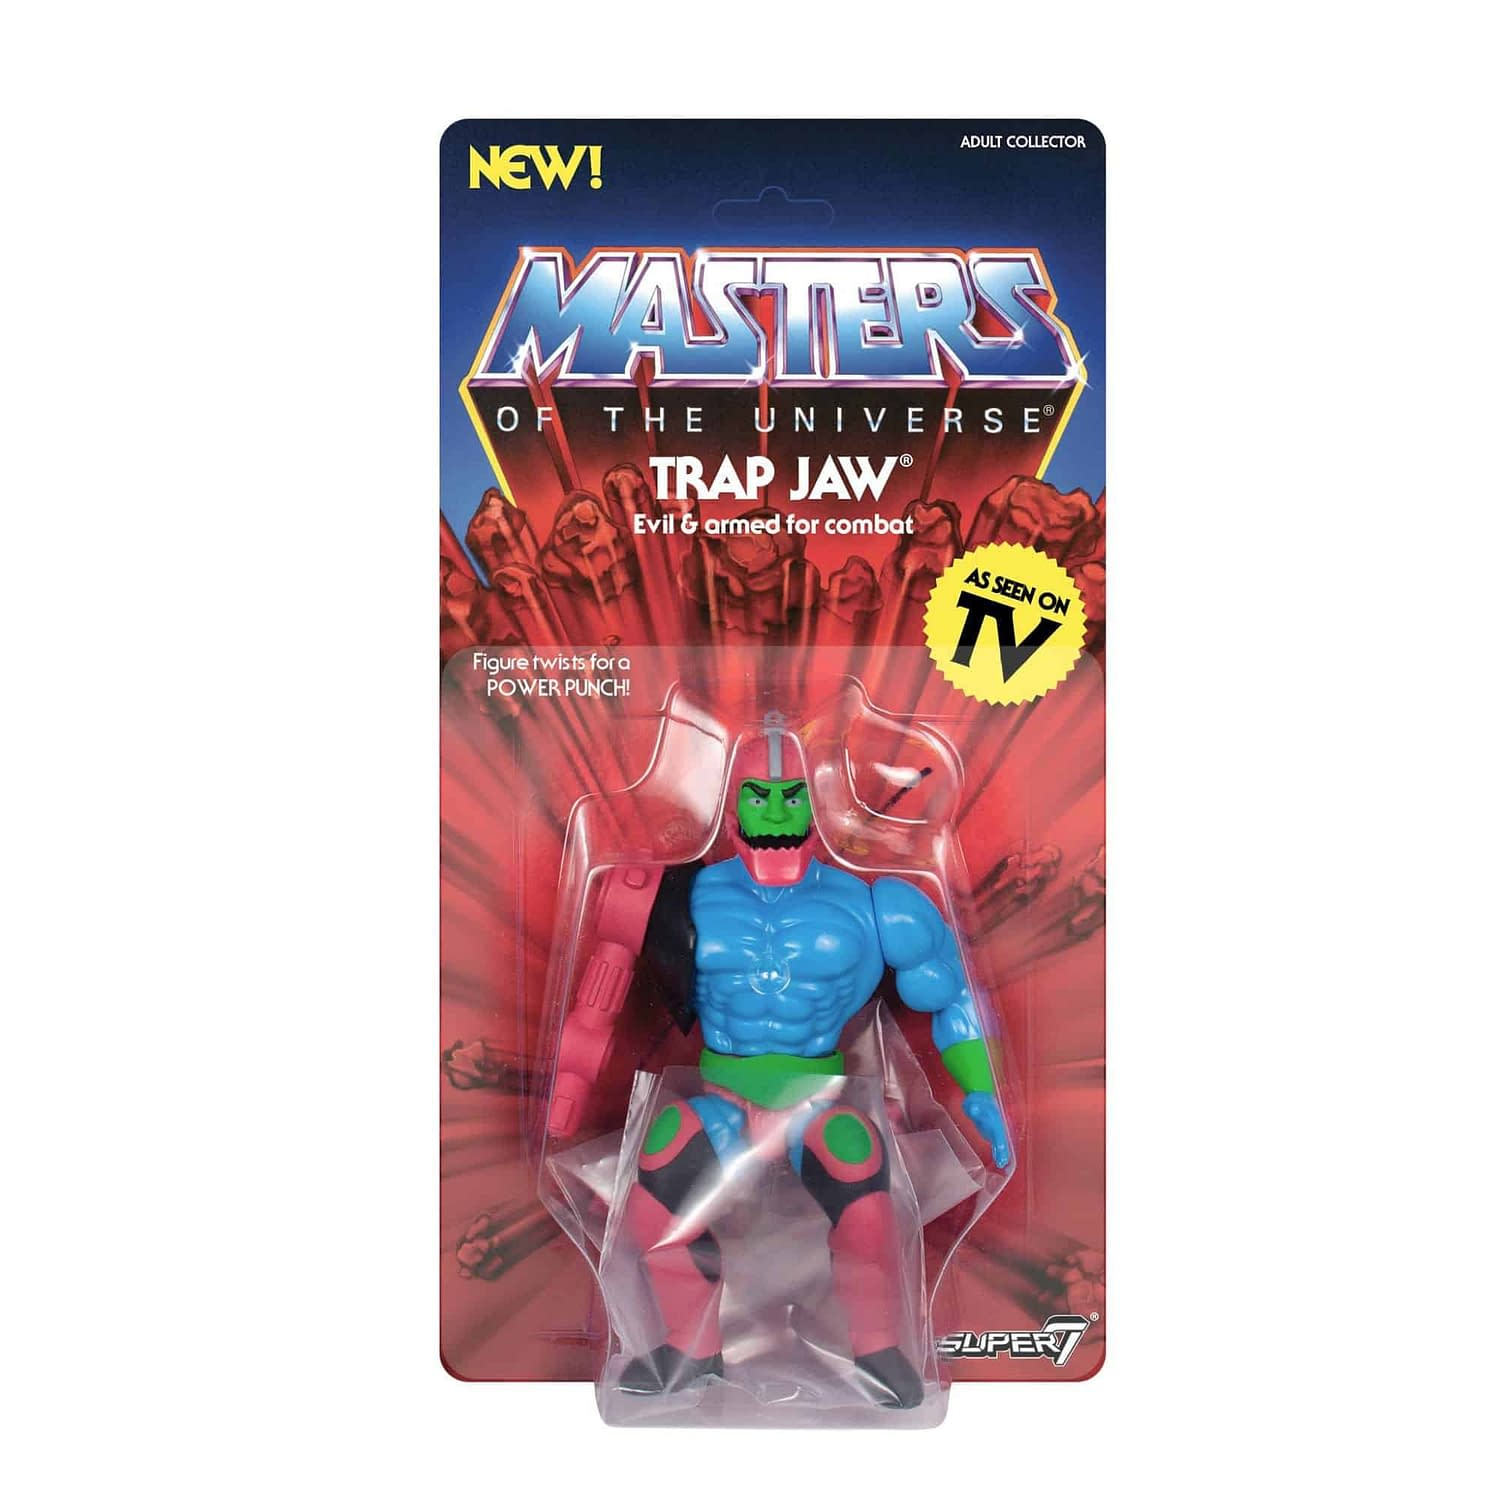 Masters of the Universe Vintage Trap Jaw